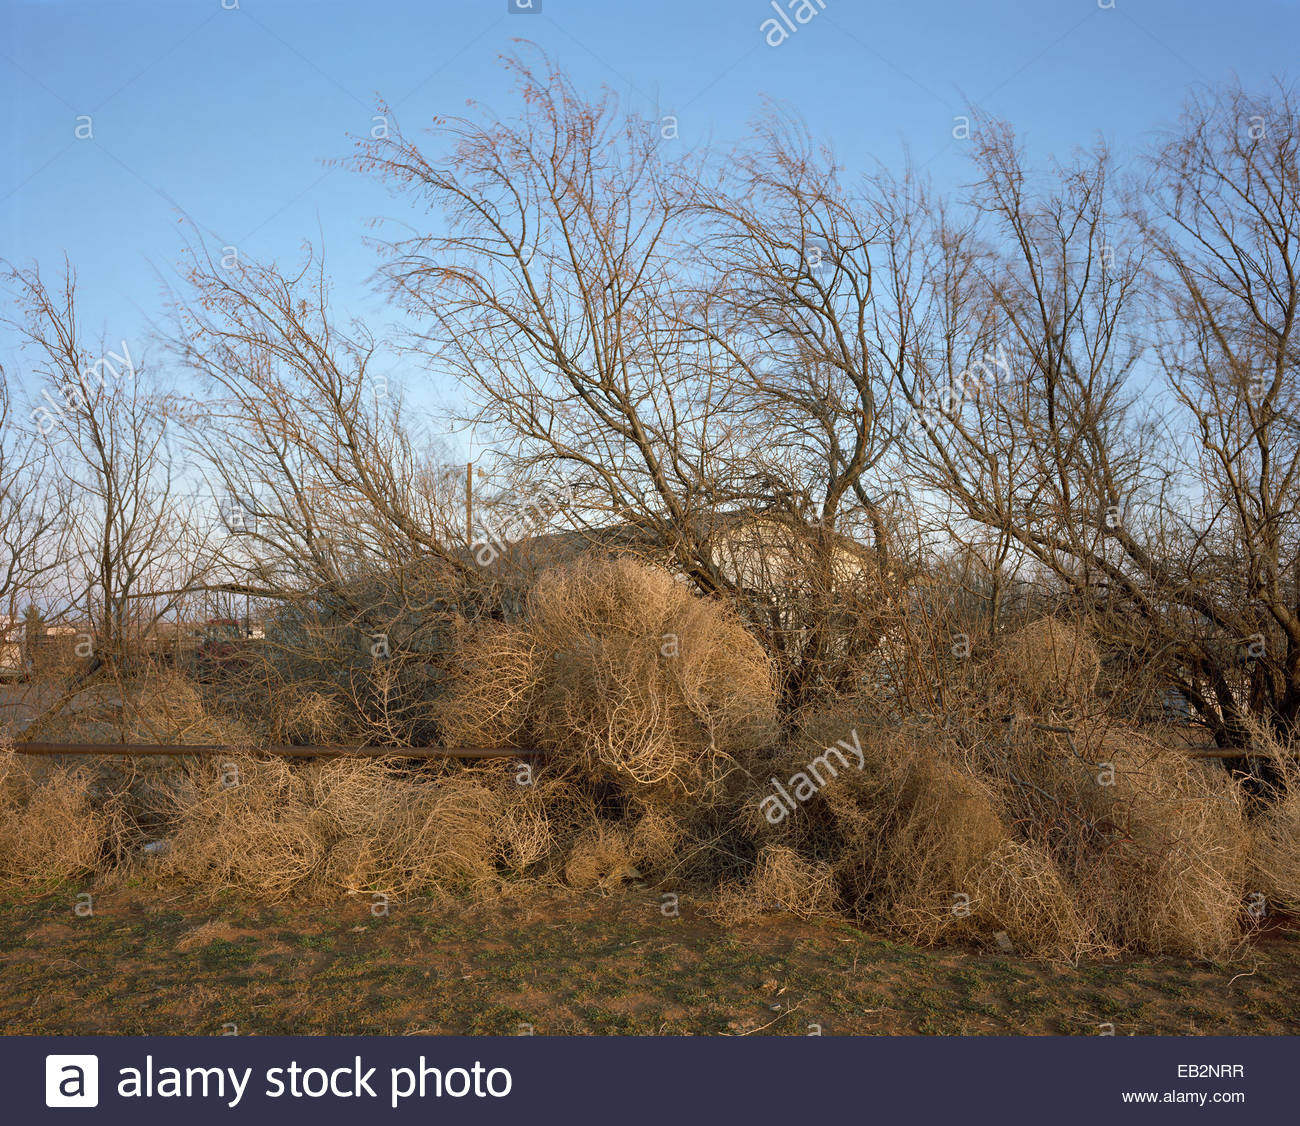 Tumbleweeds obscure a home from view. - Stock Image